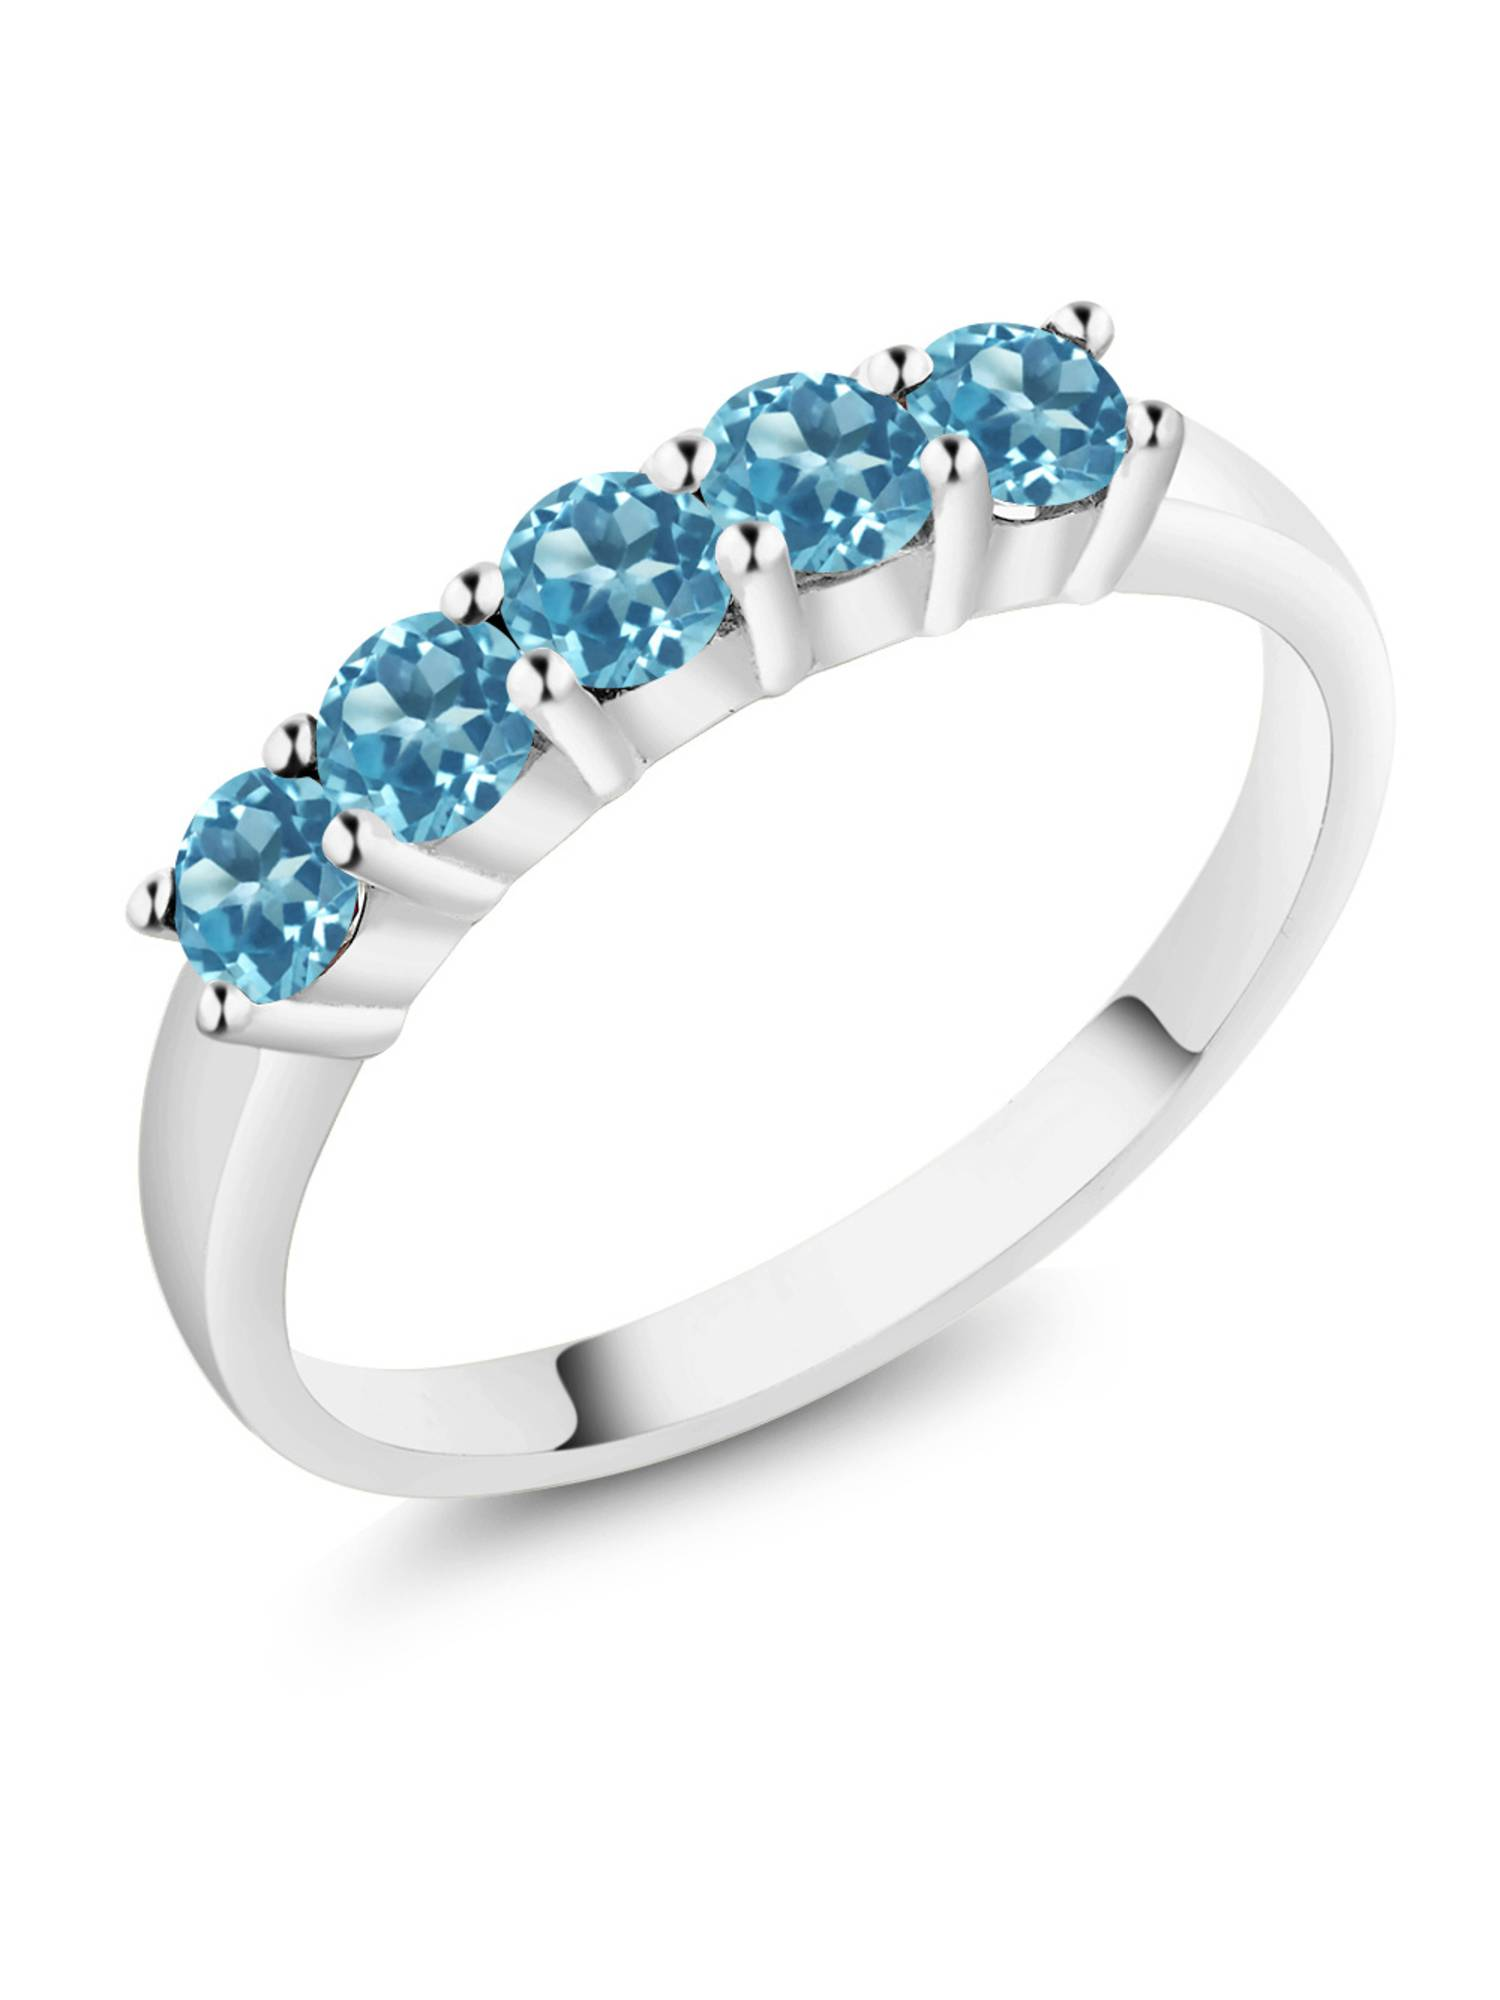 1.00 Ct Round Swiss Blue Topaz 18k White Gold Ring by